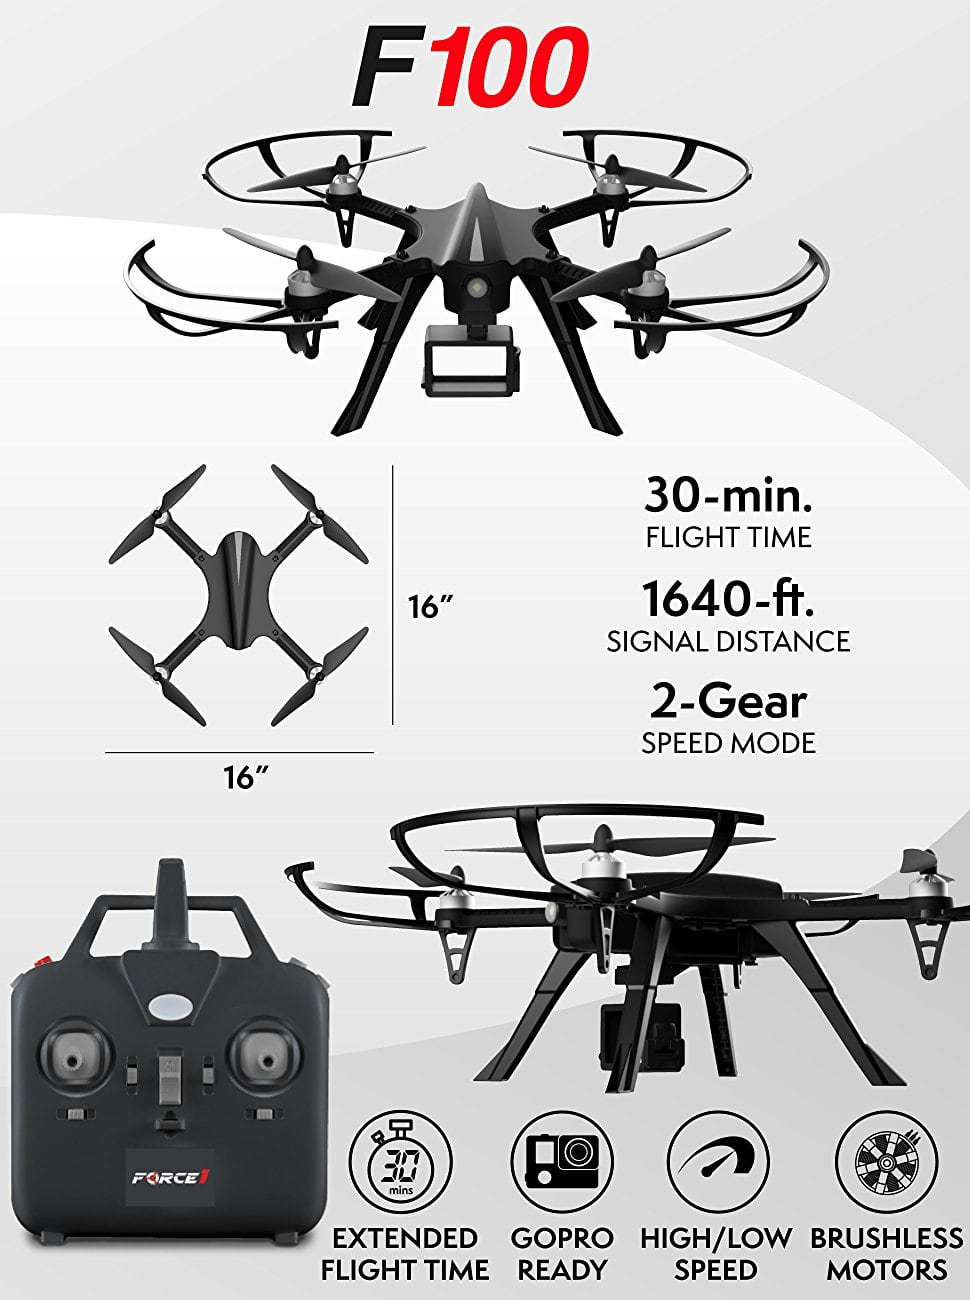 Force1 F100 Brushless Quadcopter (Rebranded MJX Bugs 3) with 2 batteries $88.99 on Amazon